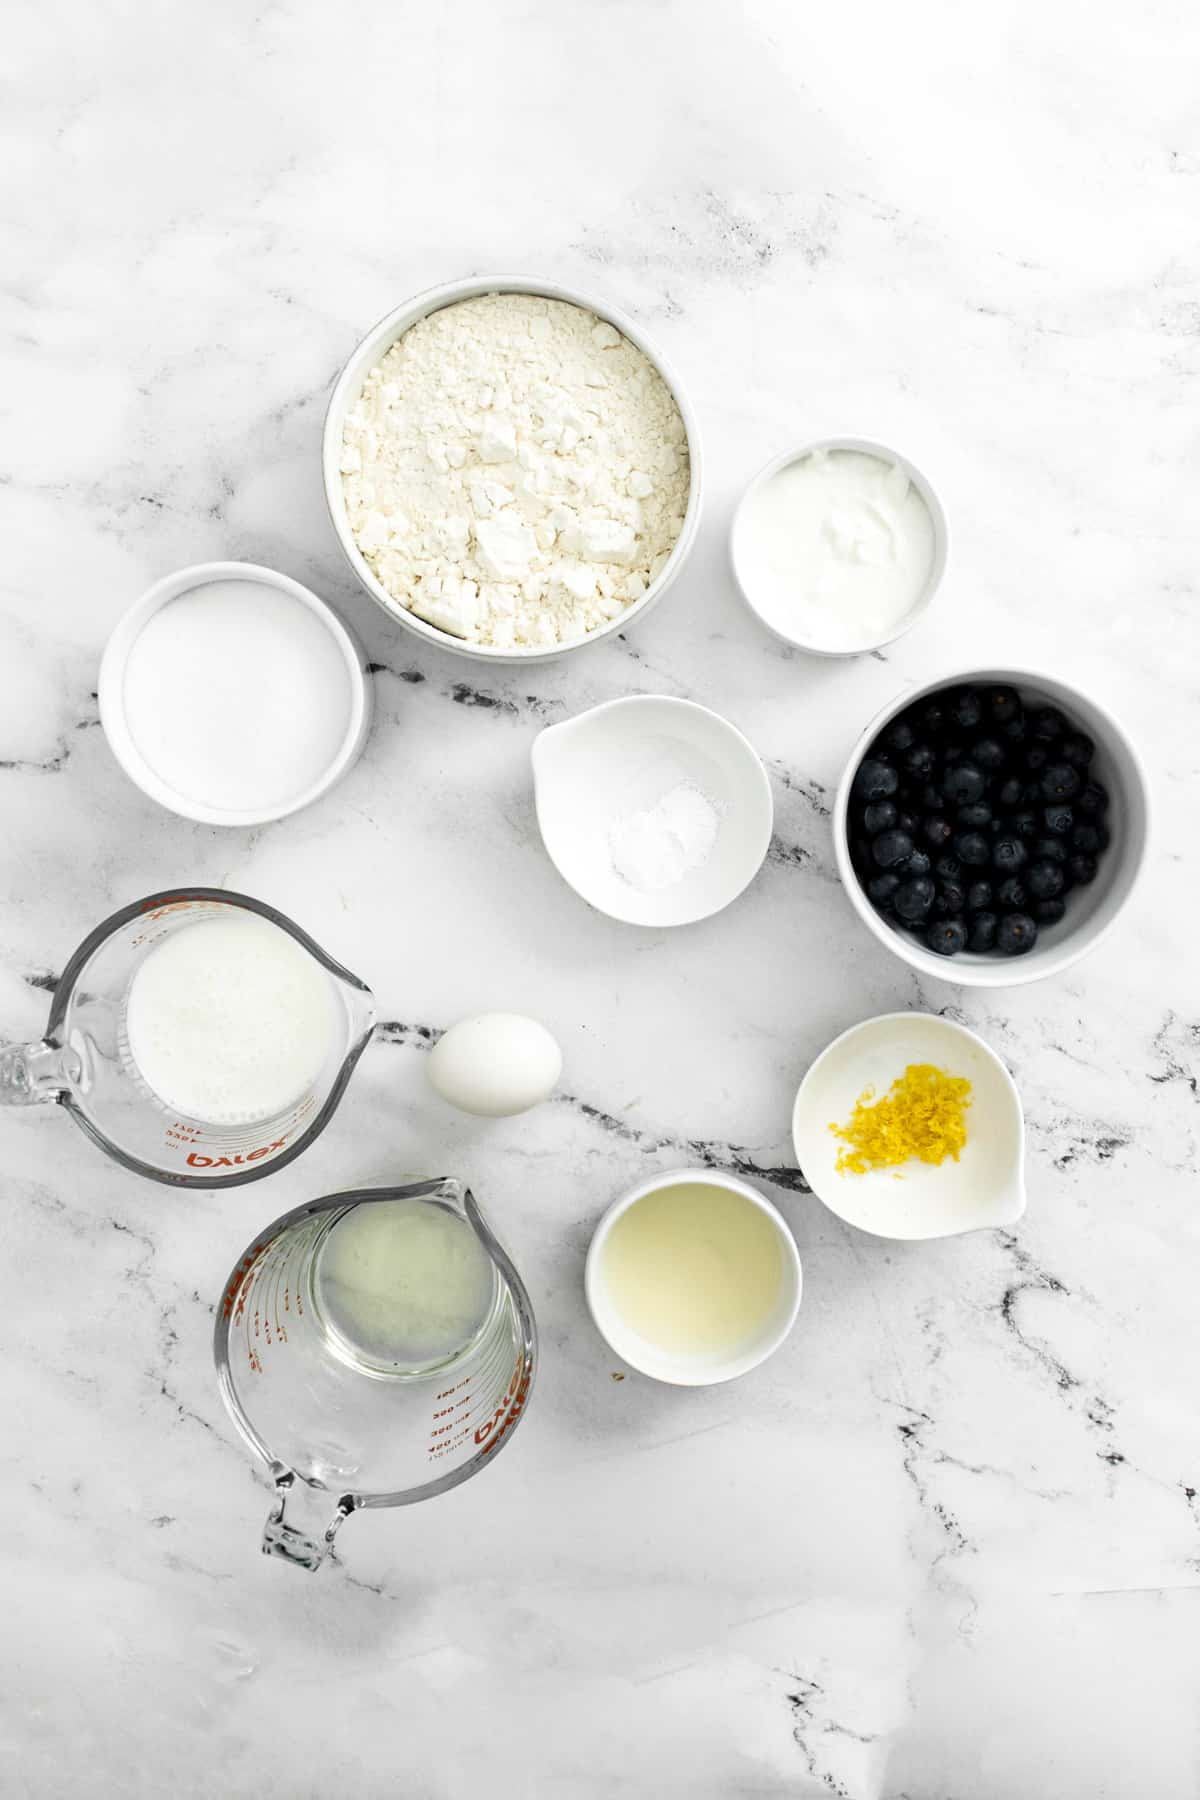 Ingredients needed to make Lemon Blueberry Muffins